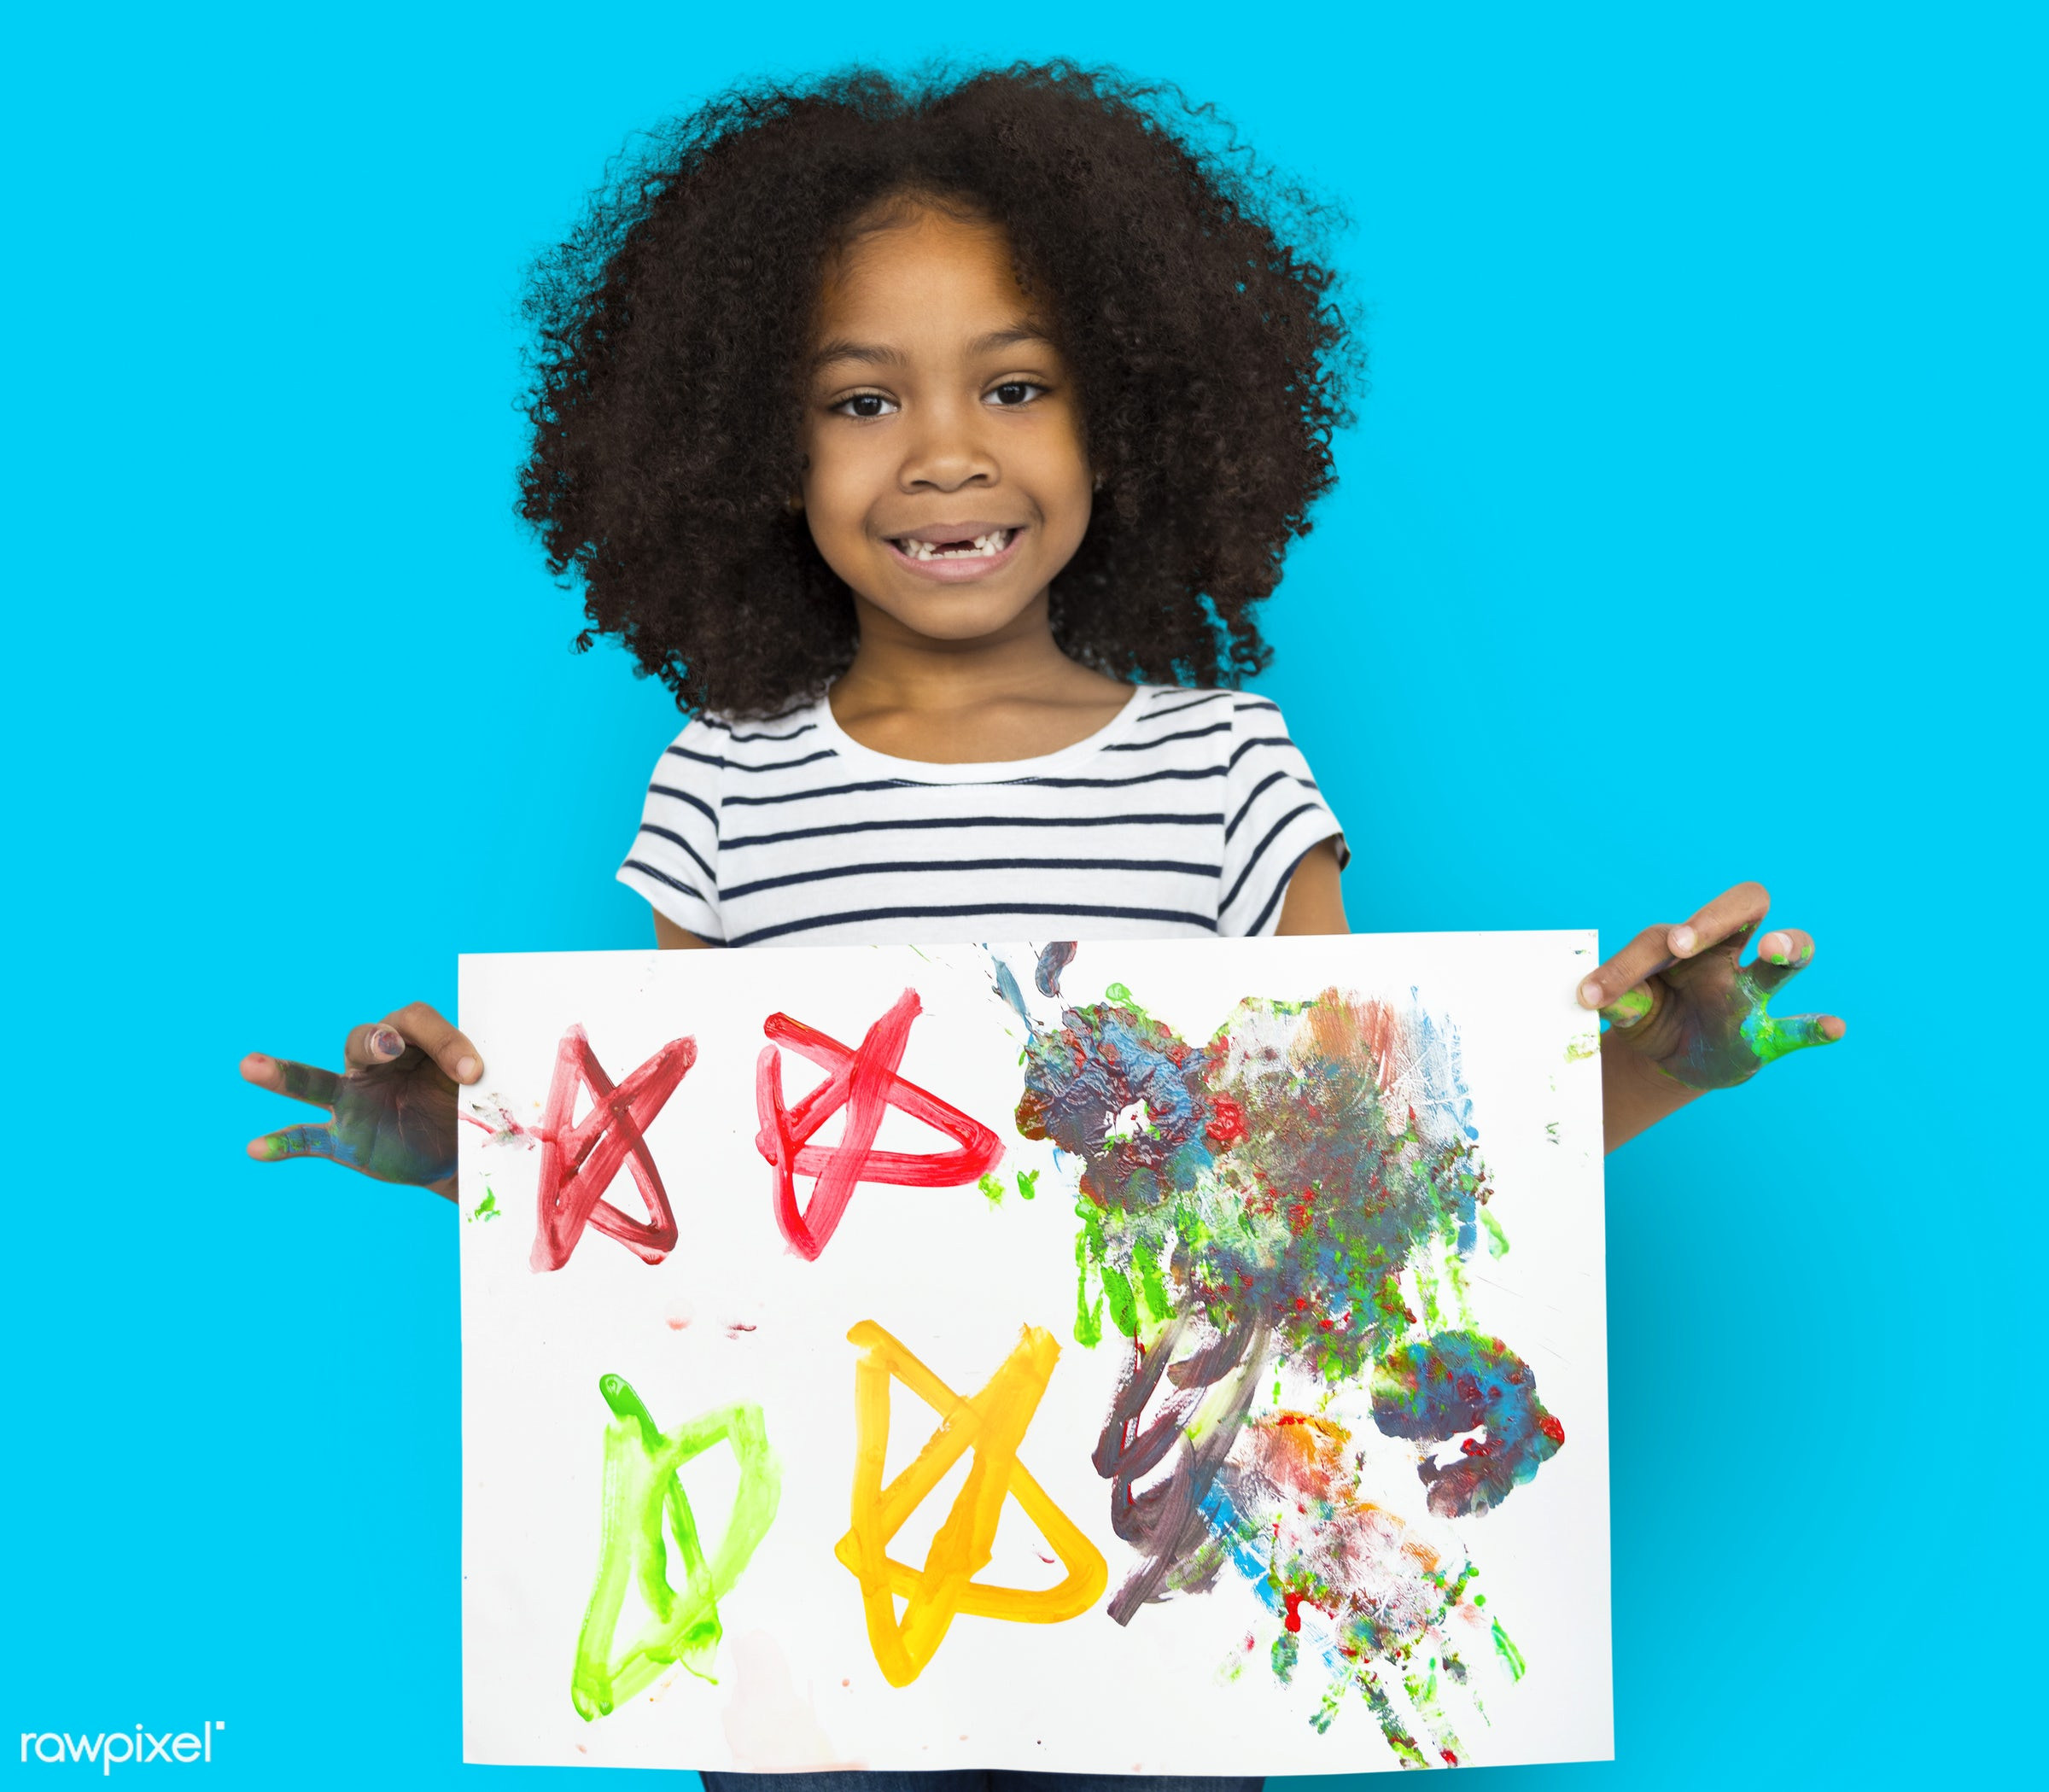 studio, expression, person, cute, pretty, people, drawing, child, girl, happy, casual, childhood, cheerful, smiling,...